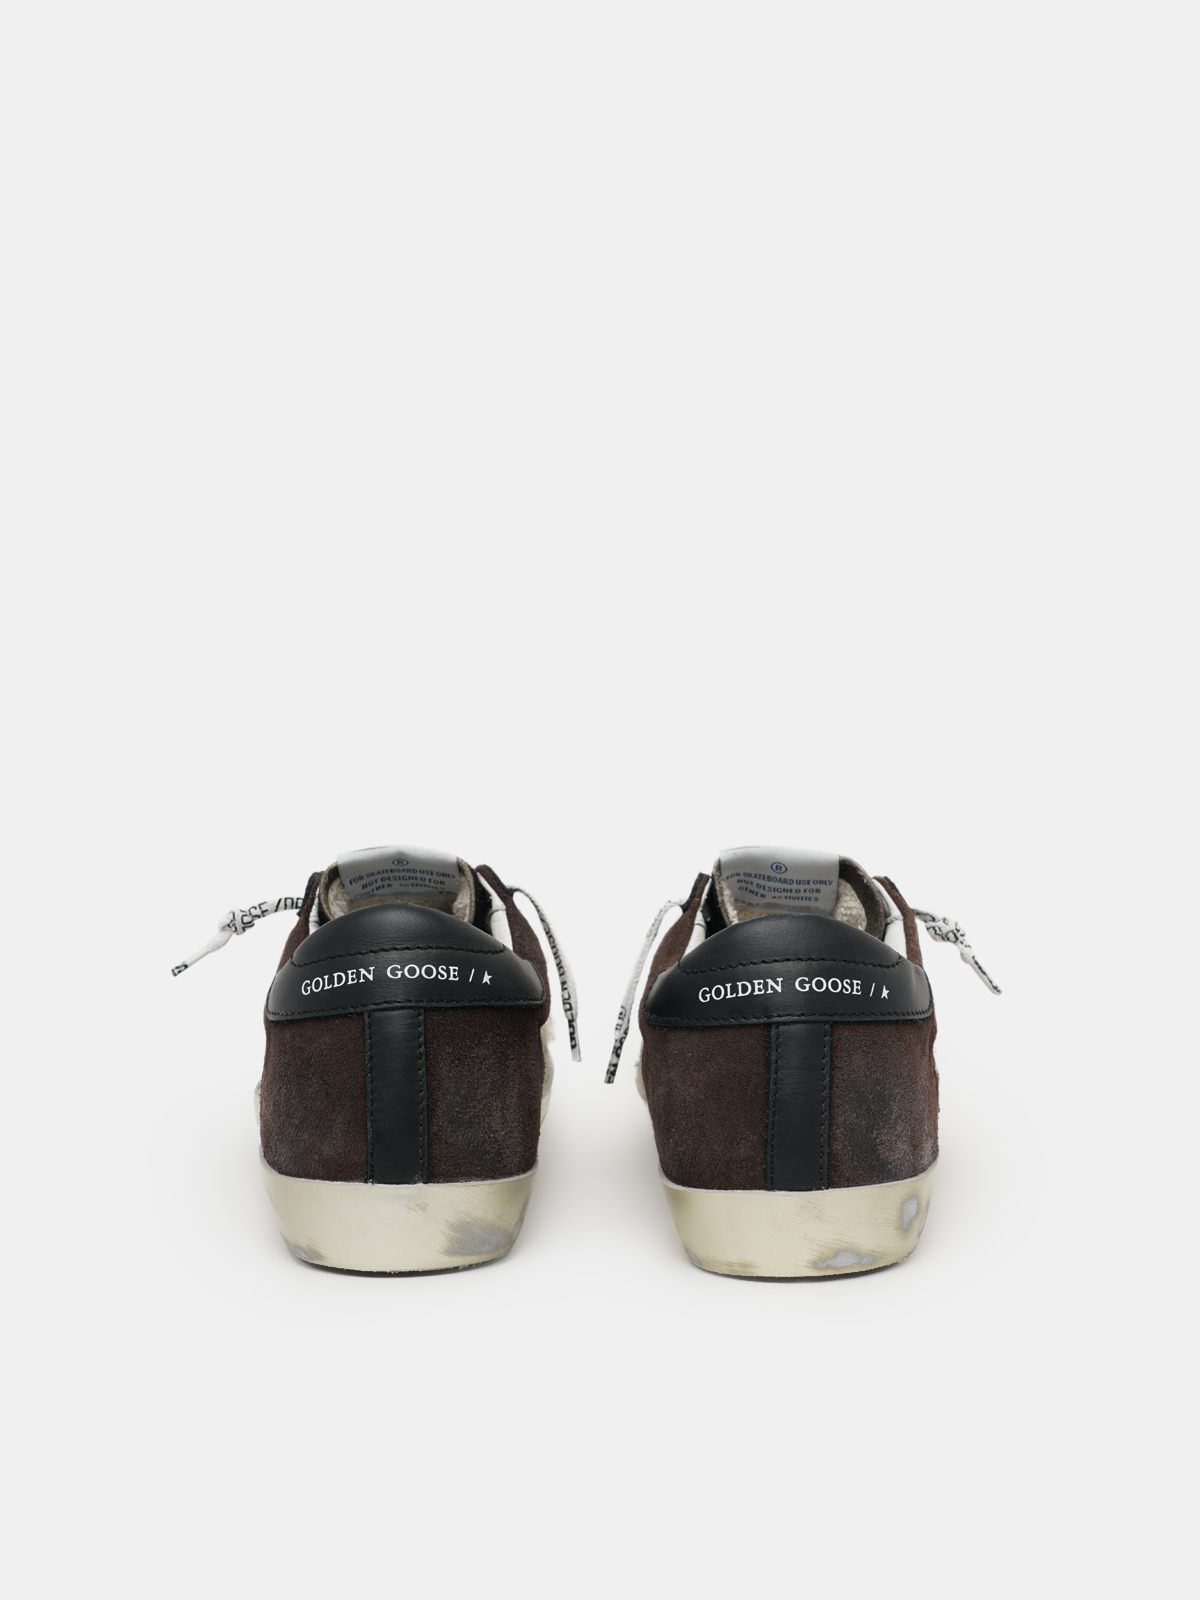 Golden Goose - Super-Star sneakers with leopard-print jacquard and suede inserts and pony skin tongue in